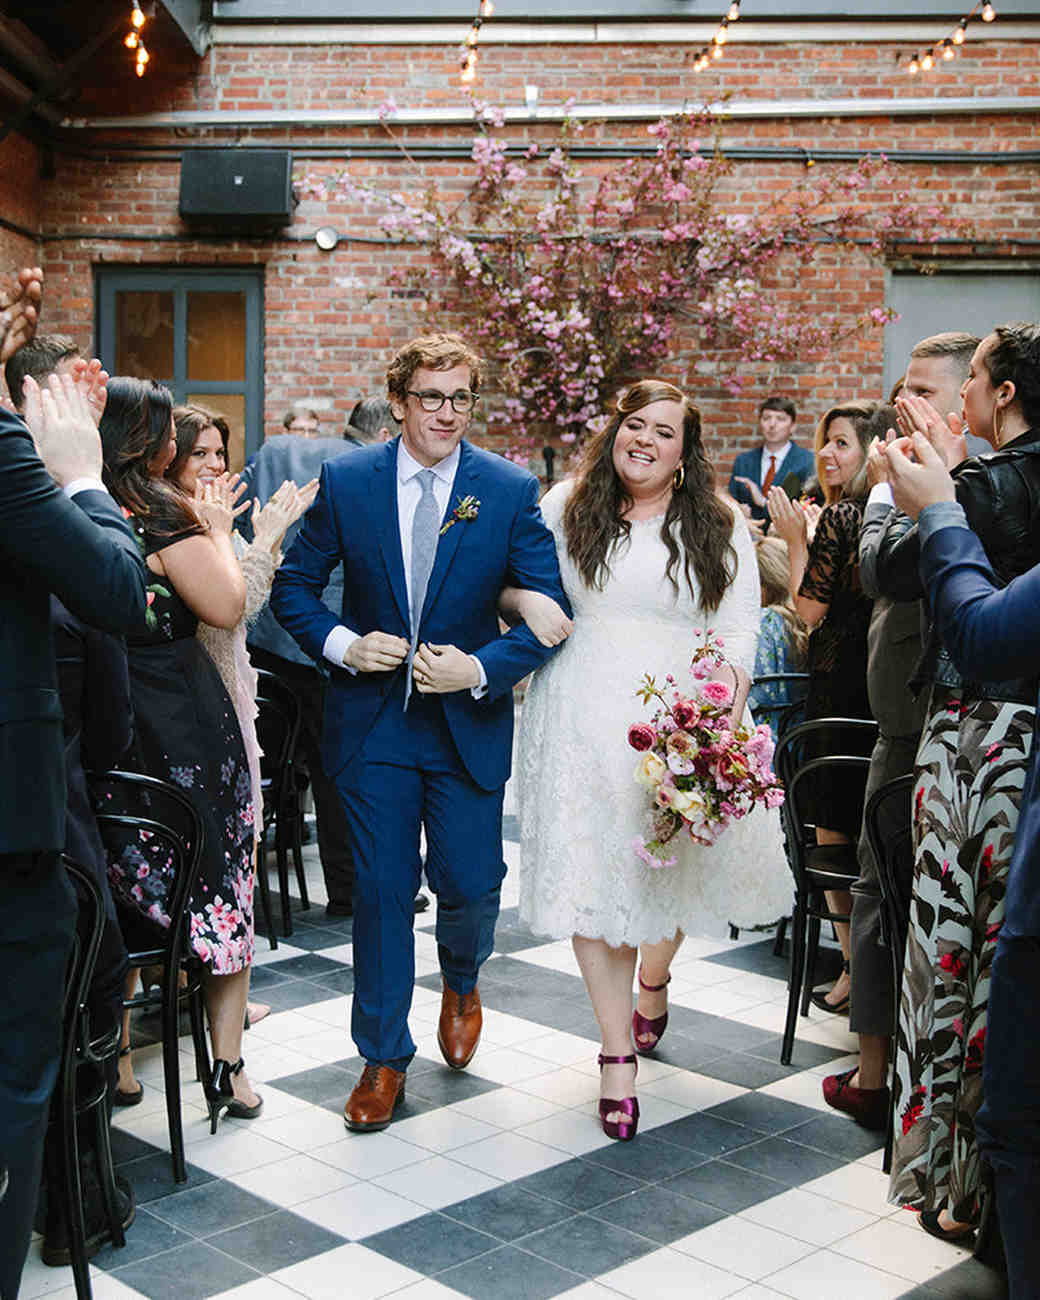 Aidy Bryant and Conner O'Malley Wedding